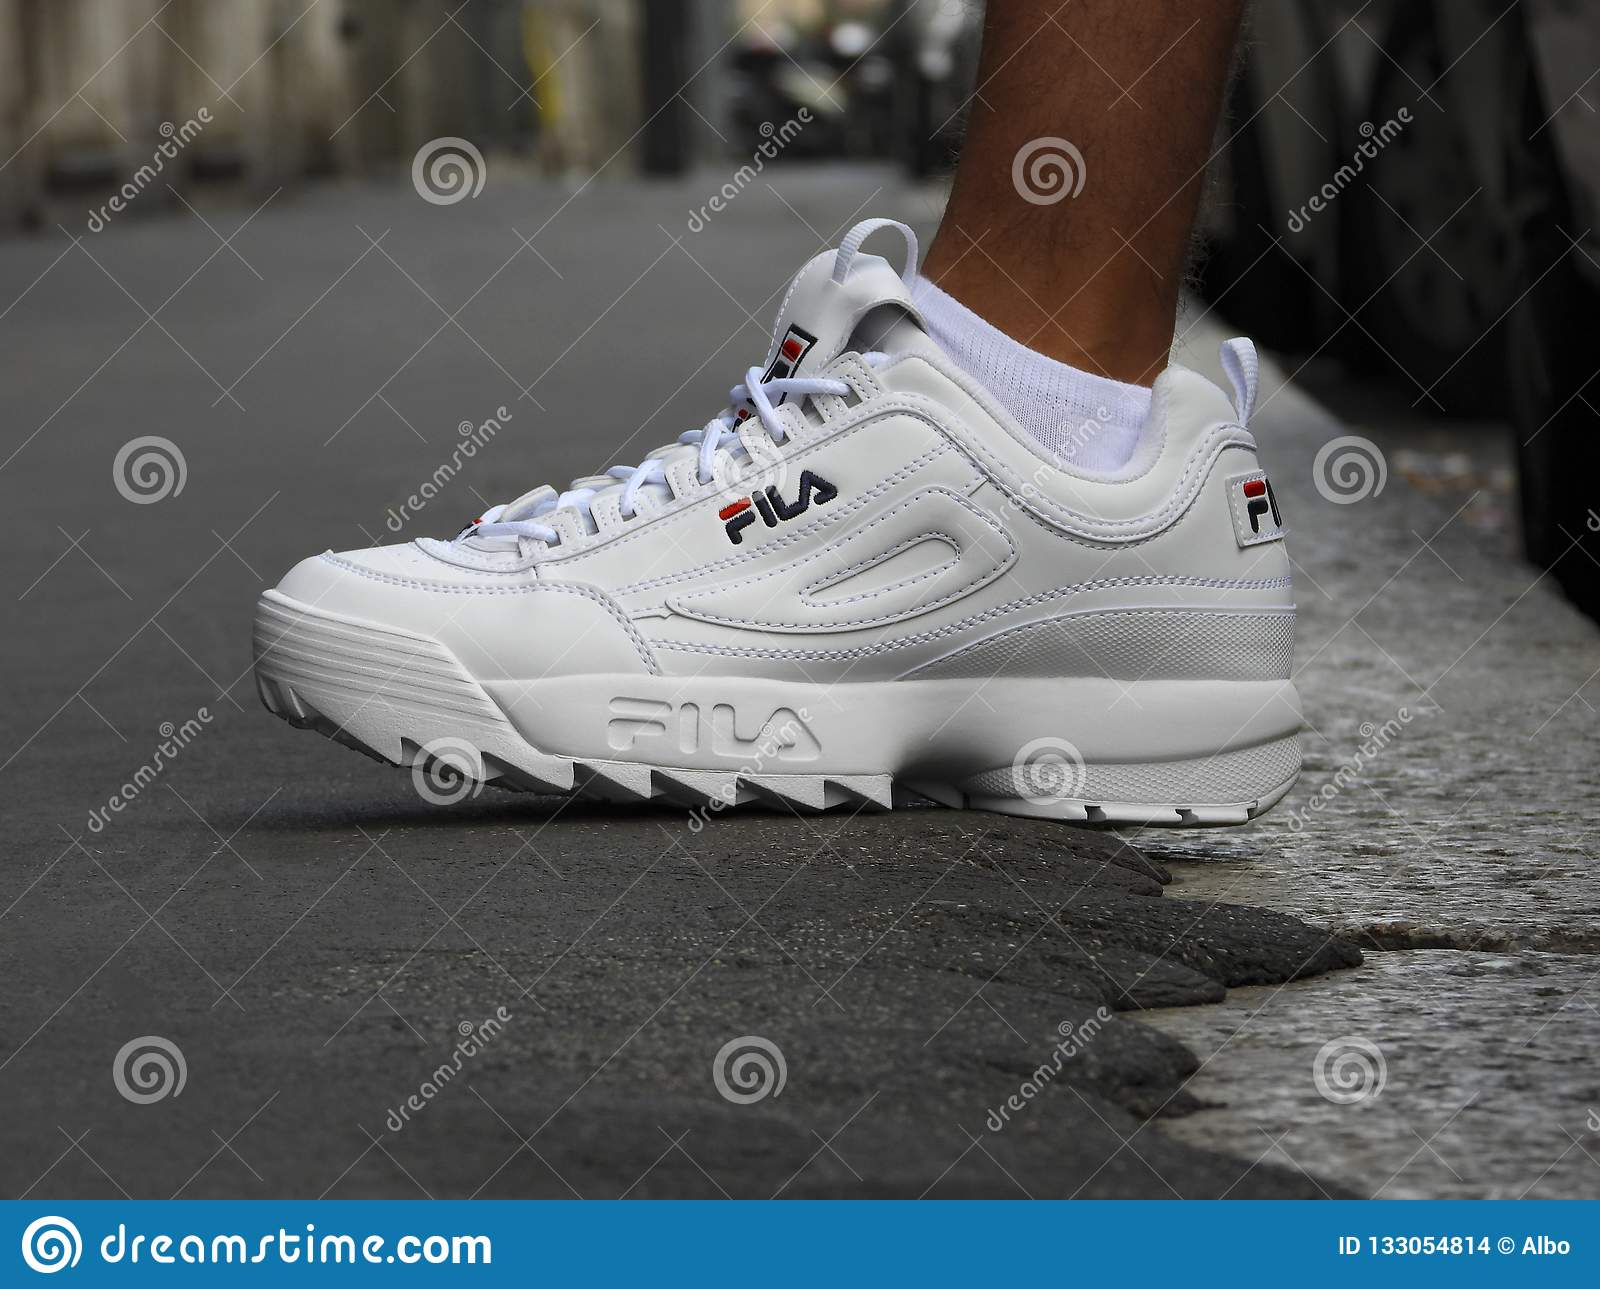 Fila Disruptor shoes in the street